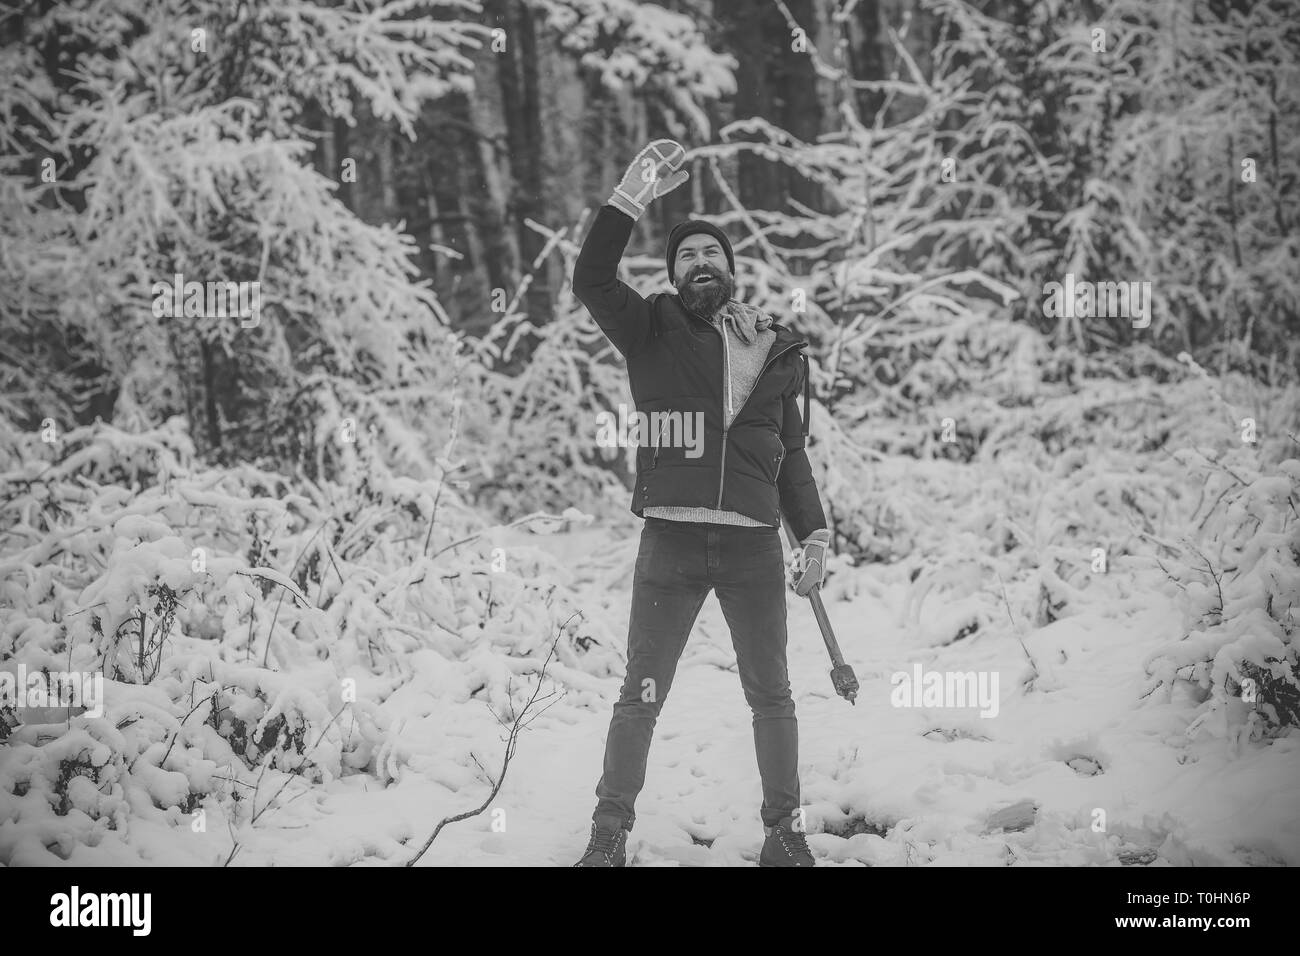 Man lumberjack in thermal jacket with ax. - Stock Image